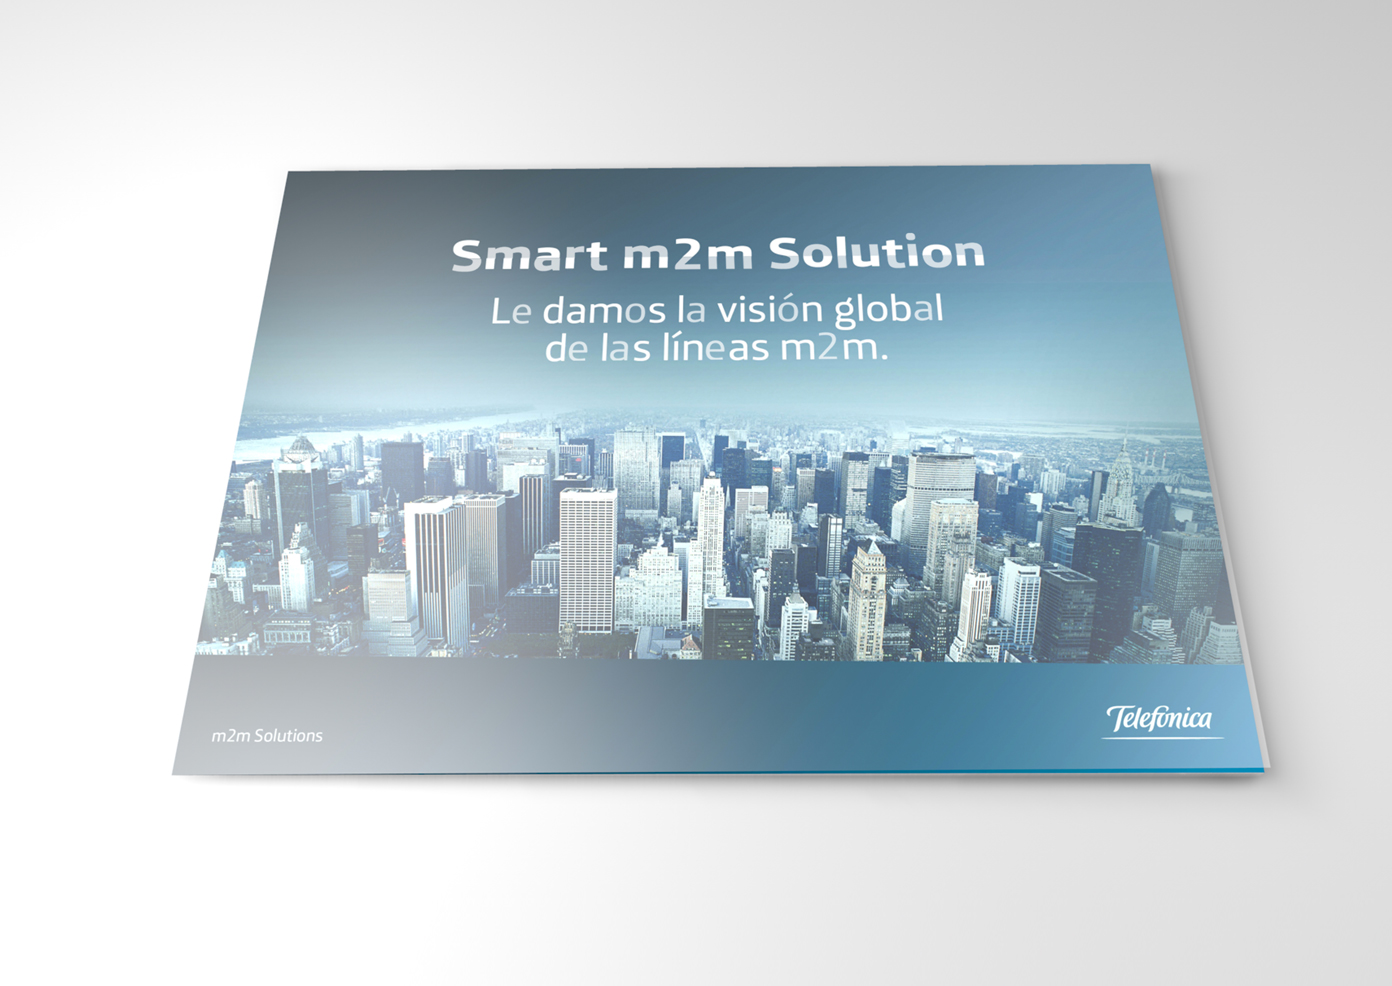 Telefónica m2m Smart Solution